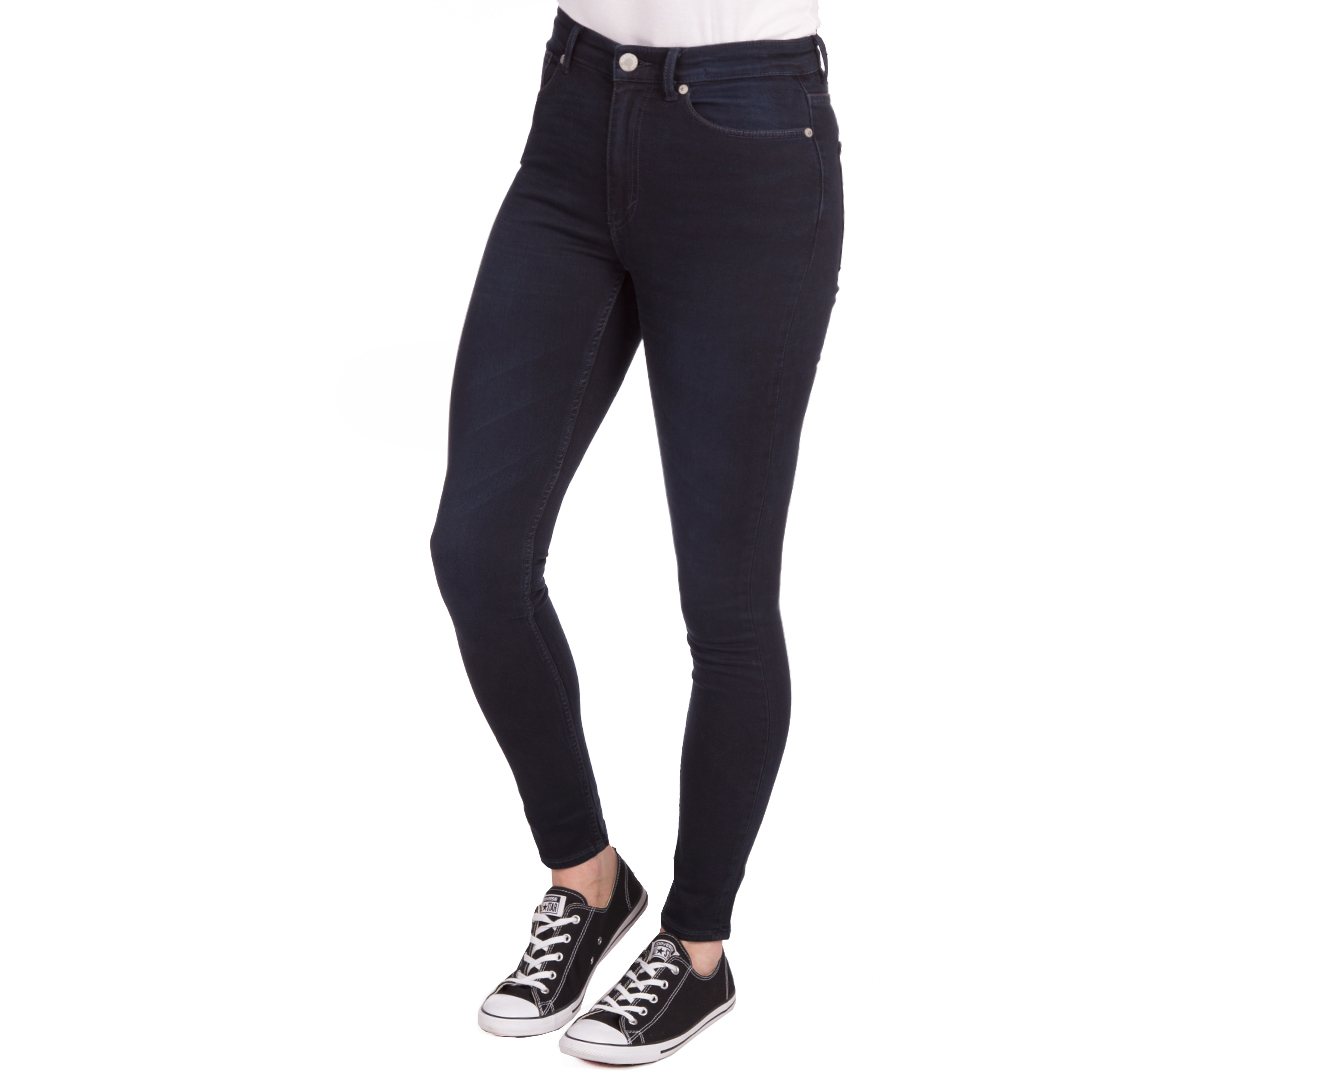 New listing CHEAP MONDAY Ladies DARK Blue Stretchy Button FLY JEANS SIZE W 24 L